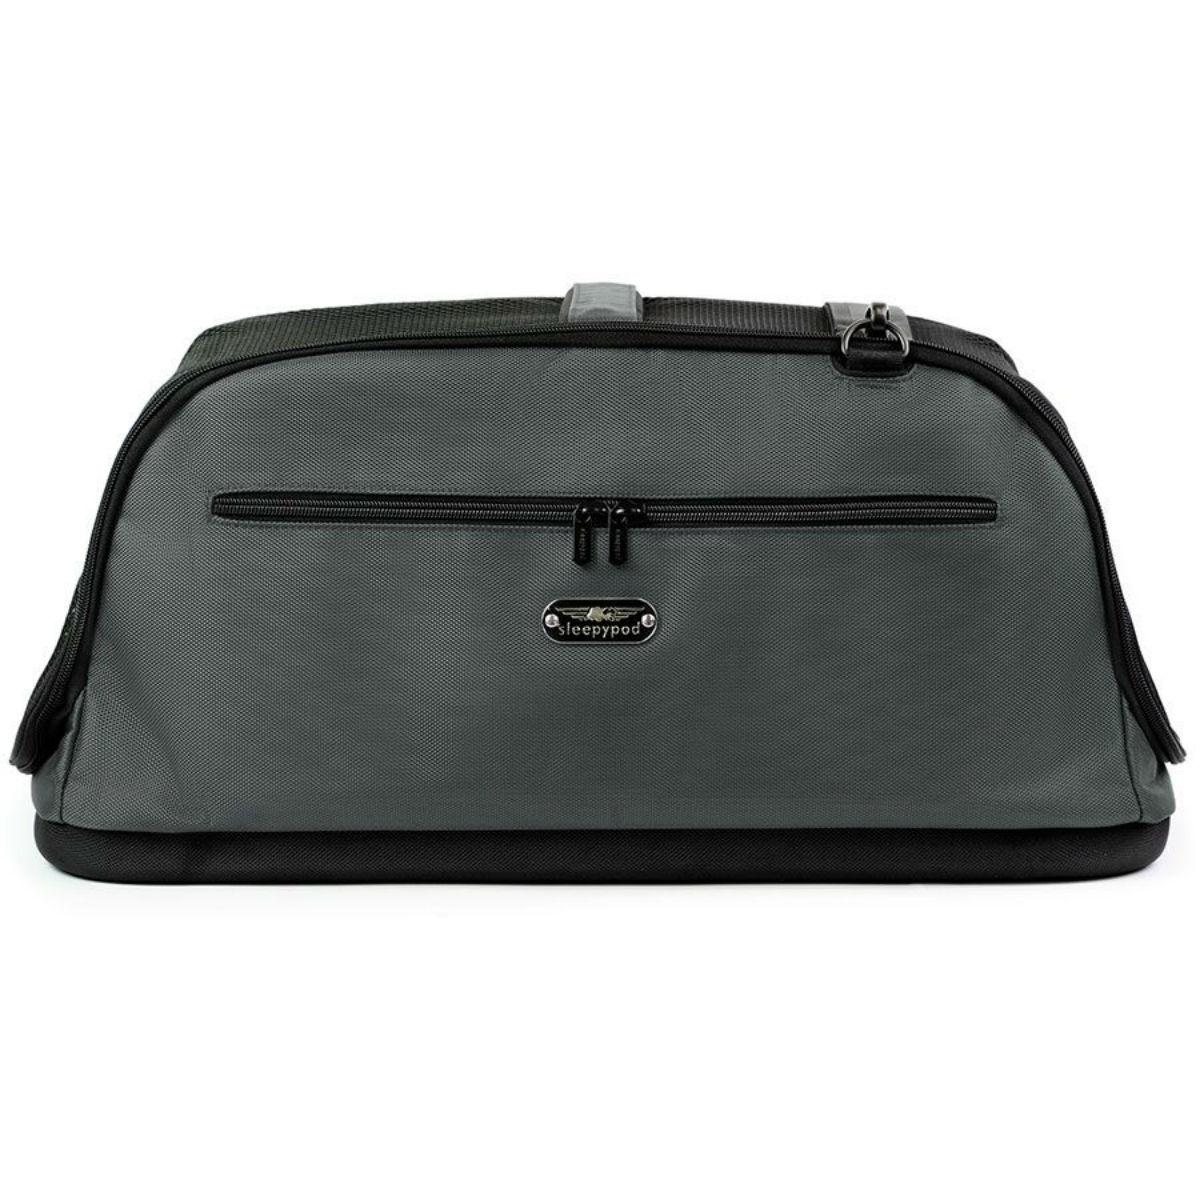 Sleepypod Air Travel Pet Carrier Bed - Charcoal